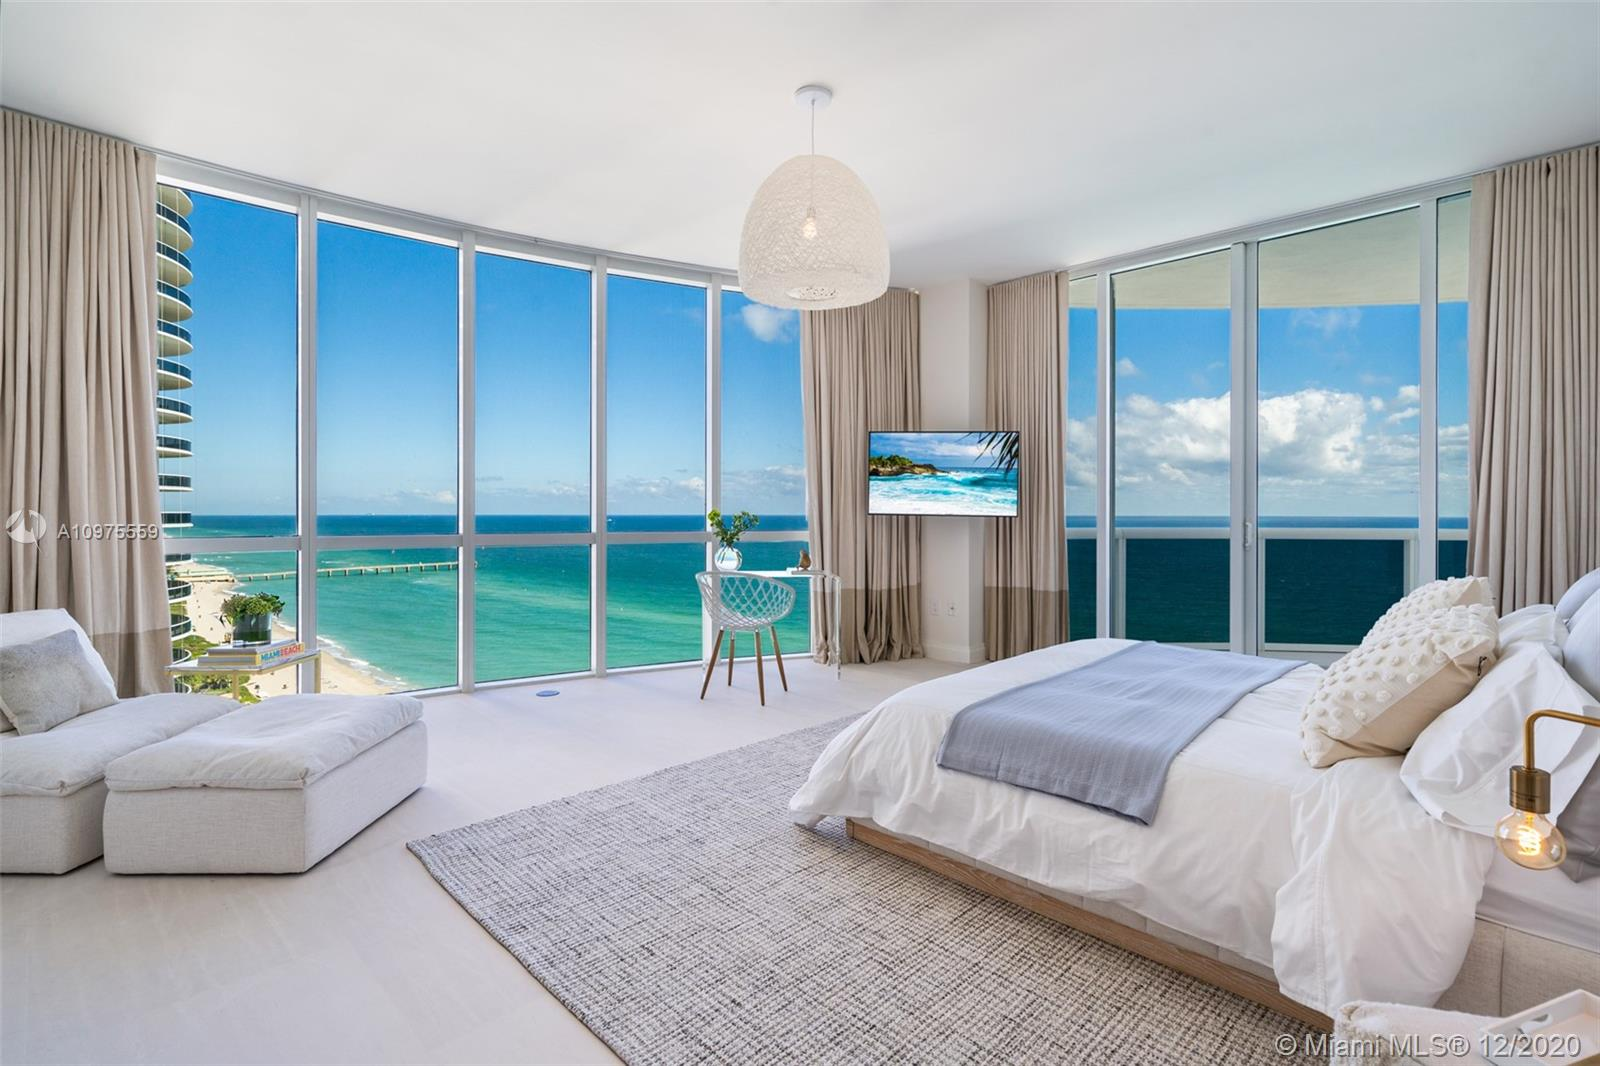 Trump Tower II #1601 - 15901 Collins Ave #1601, Sunny Isles Beach, FL 33160